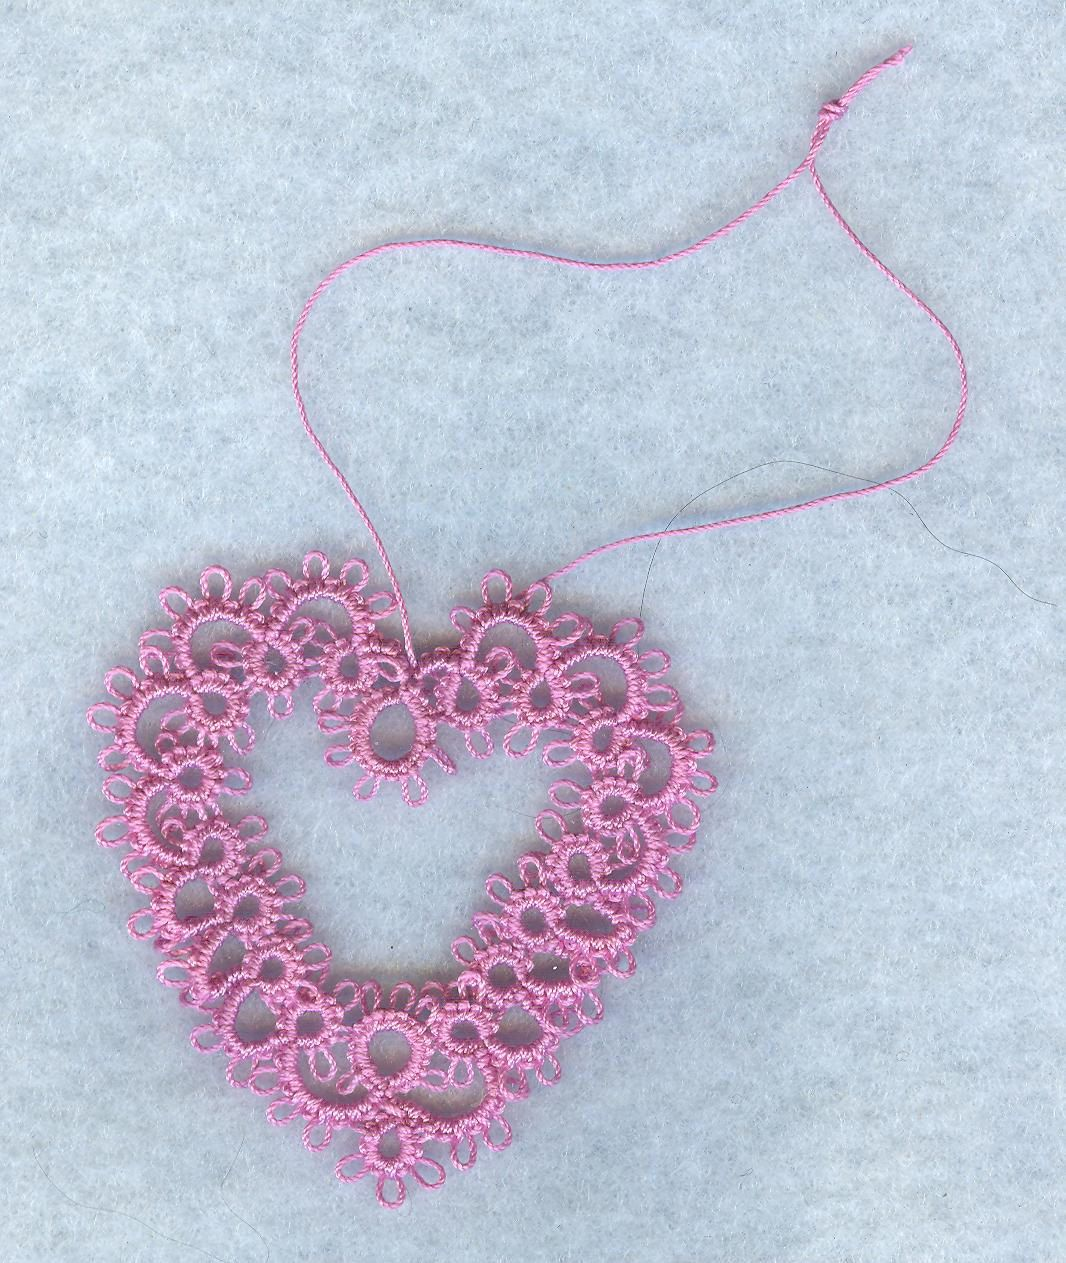 Shuttle Tatted lace heart in pink by donatajones on Etsy